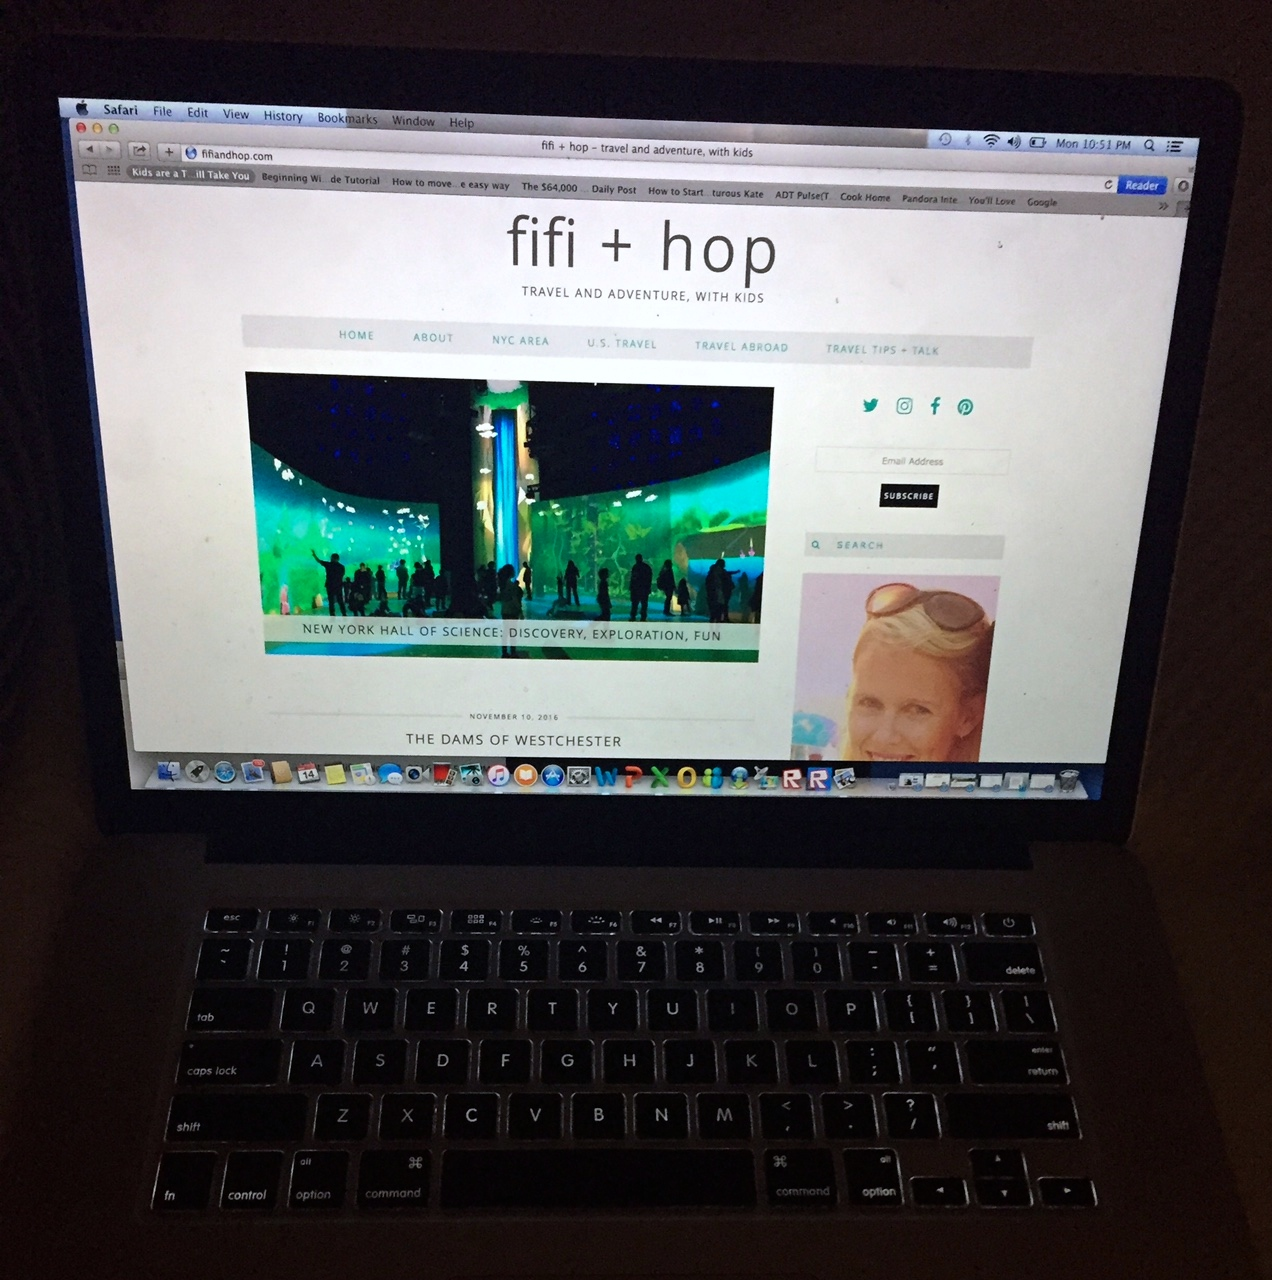 Cha-cha-cha-changes…fifi + hop has a new look!